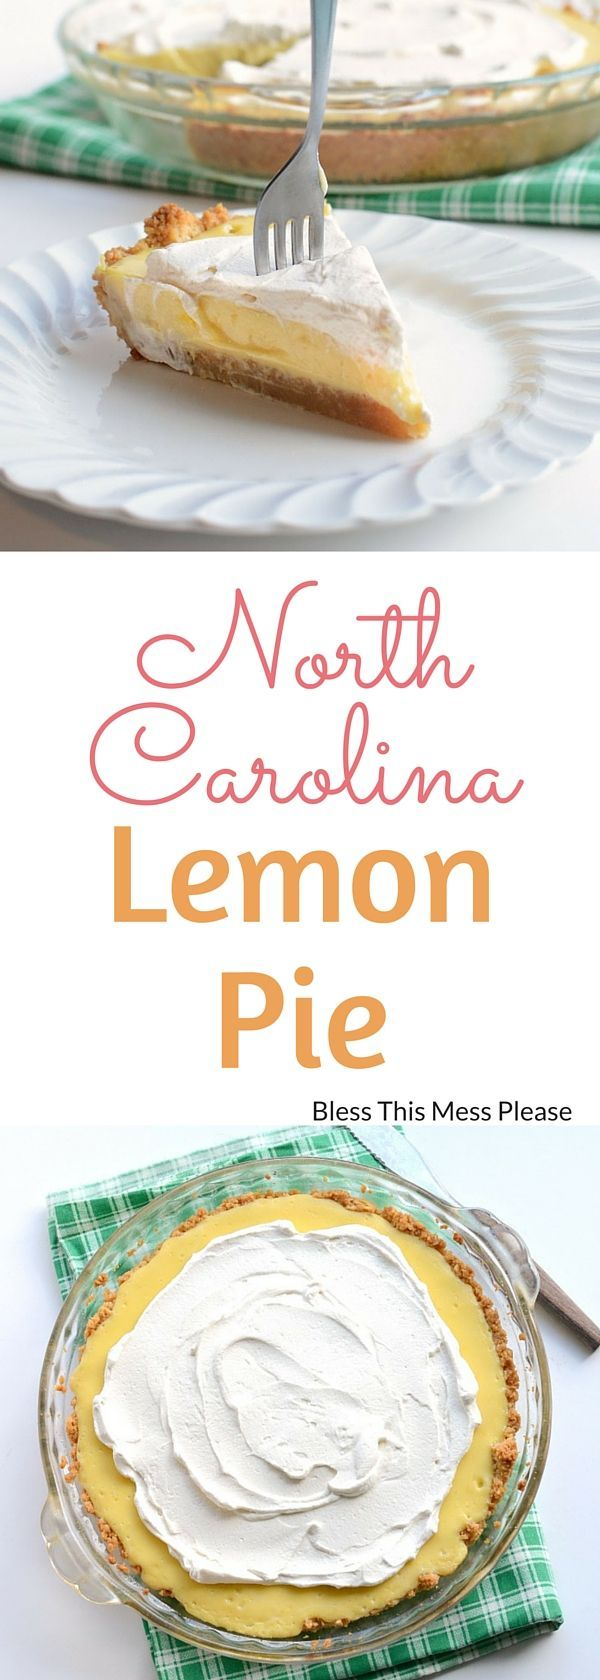 North Carolina Lemon Pie ~It's a sour, sweet, salty perfect pie combo that's easy with no traditional crust to roll out. North Carolina Lemon Pie is my kind of dessert!